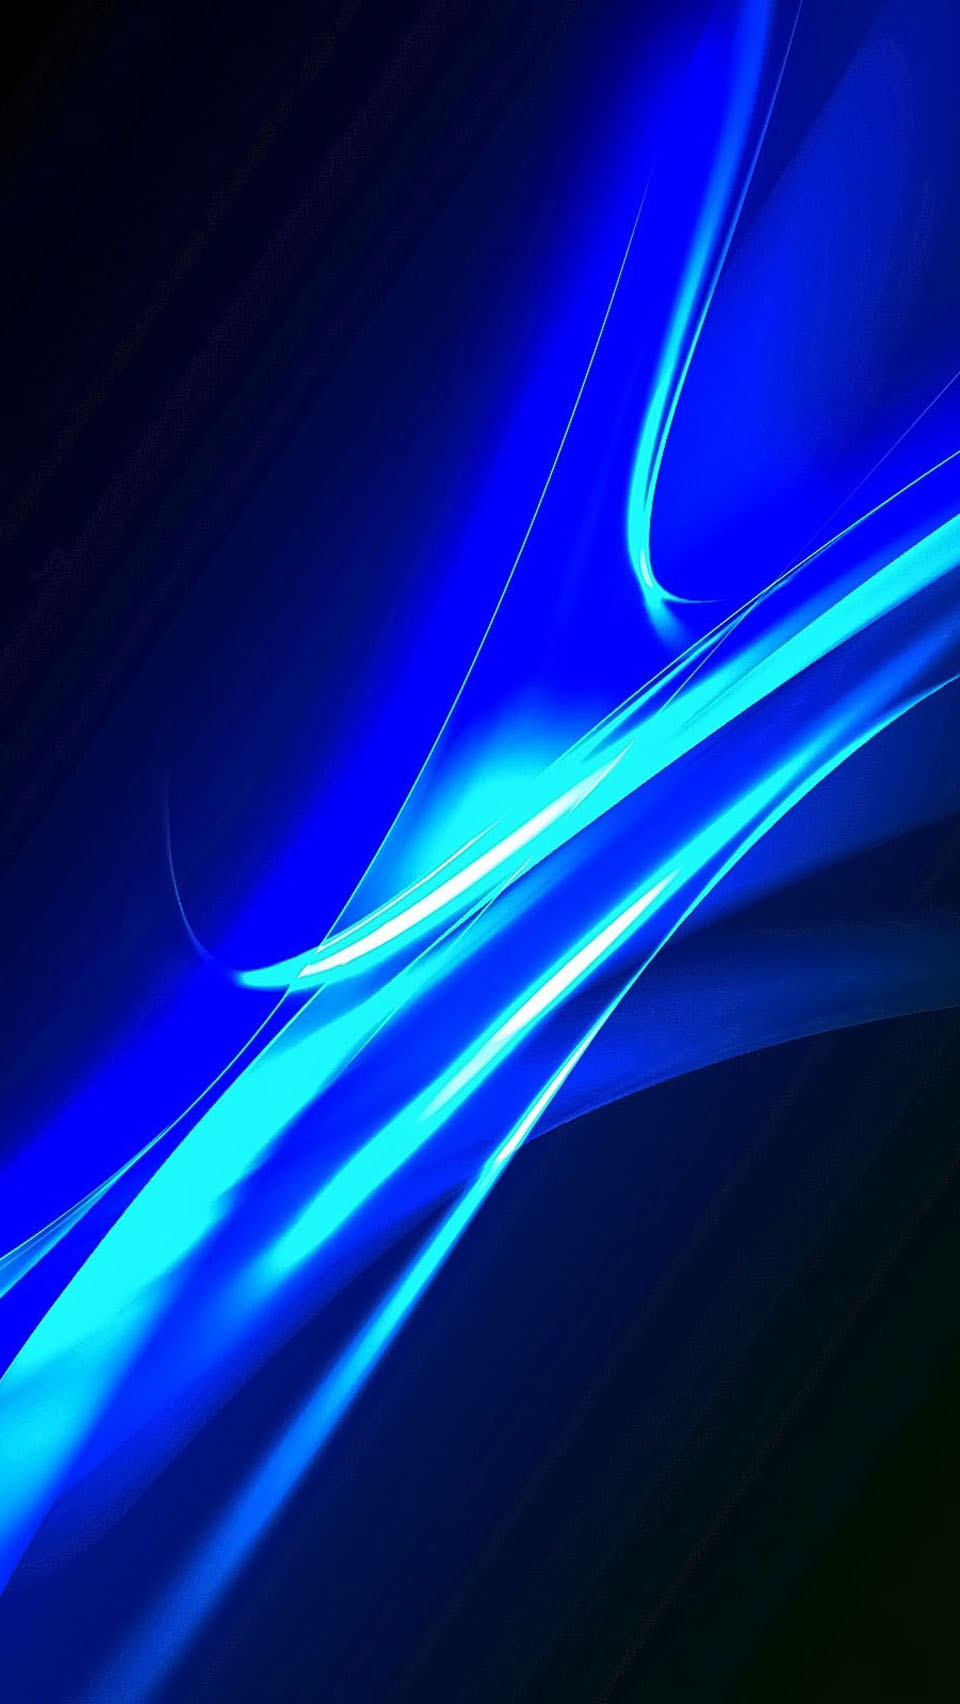 Blue-neon-light-wallpaper-wp4804807